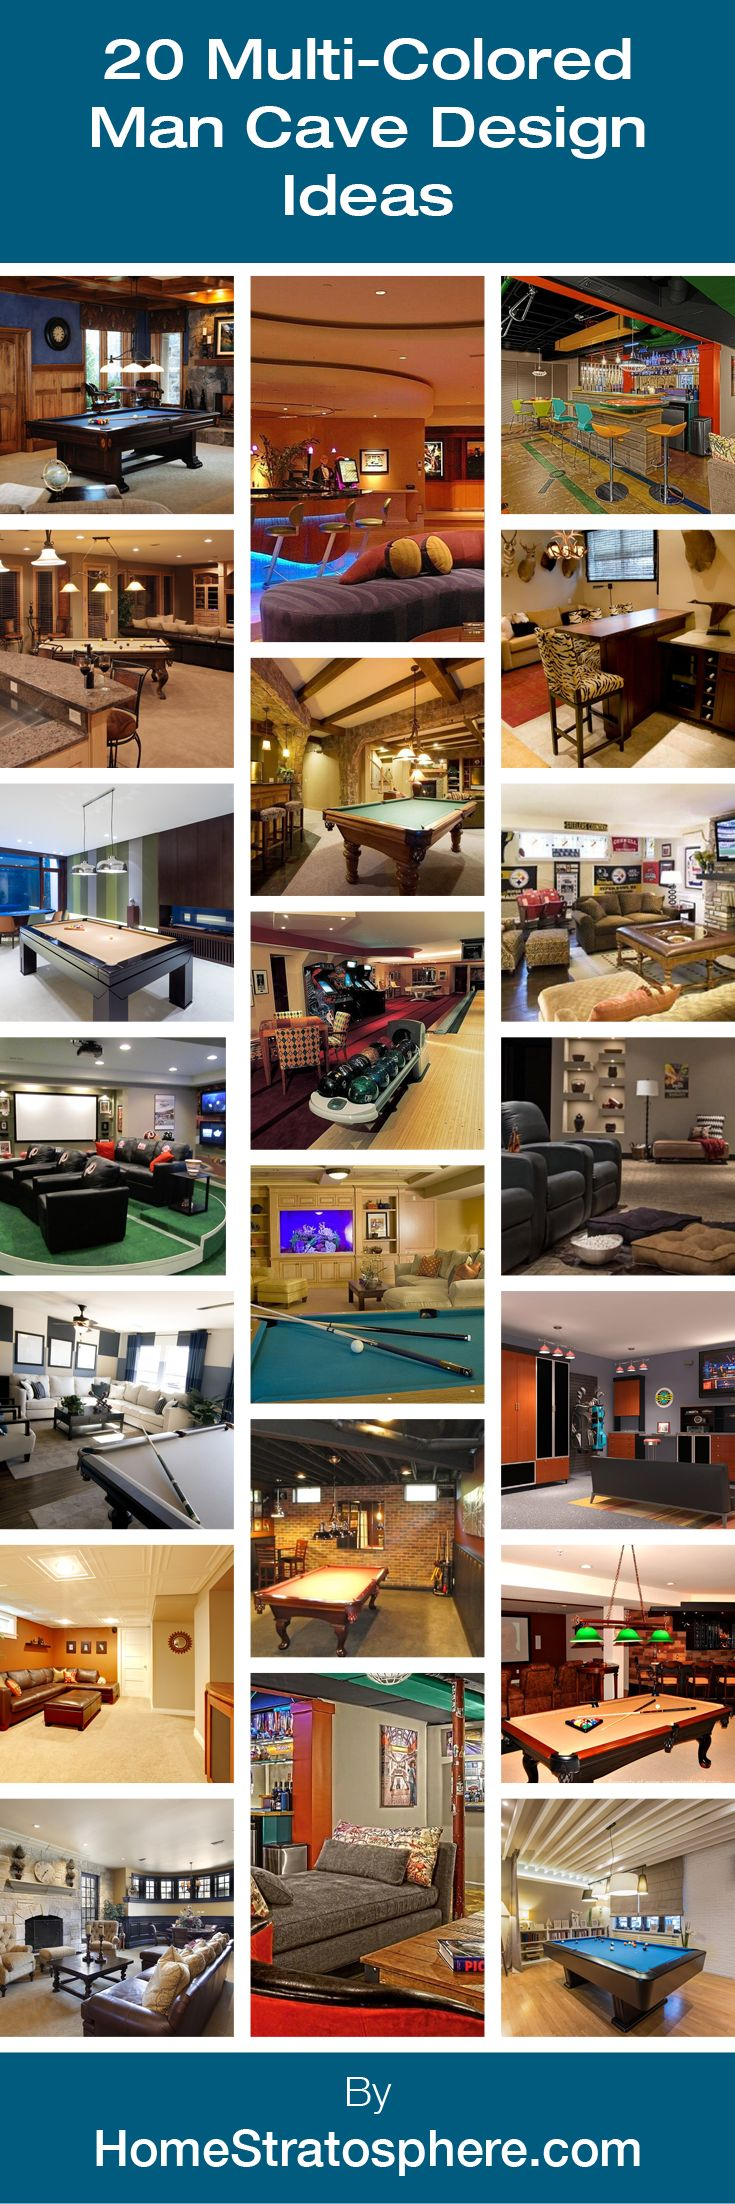 101 Man Cave Ideas that Will Blow Your Mind in 2018